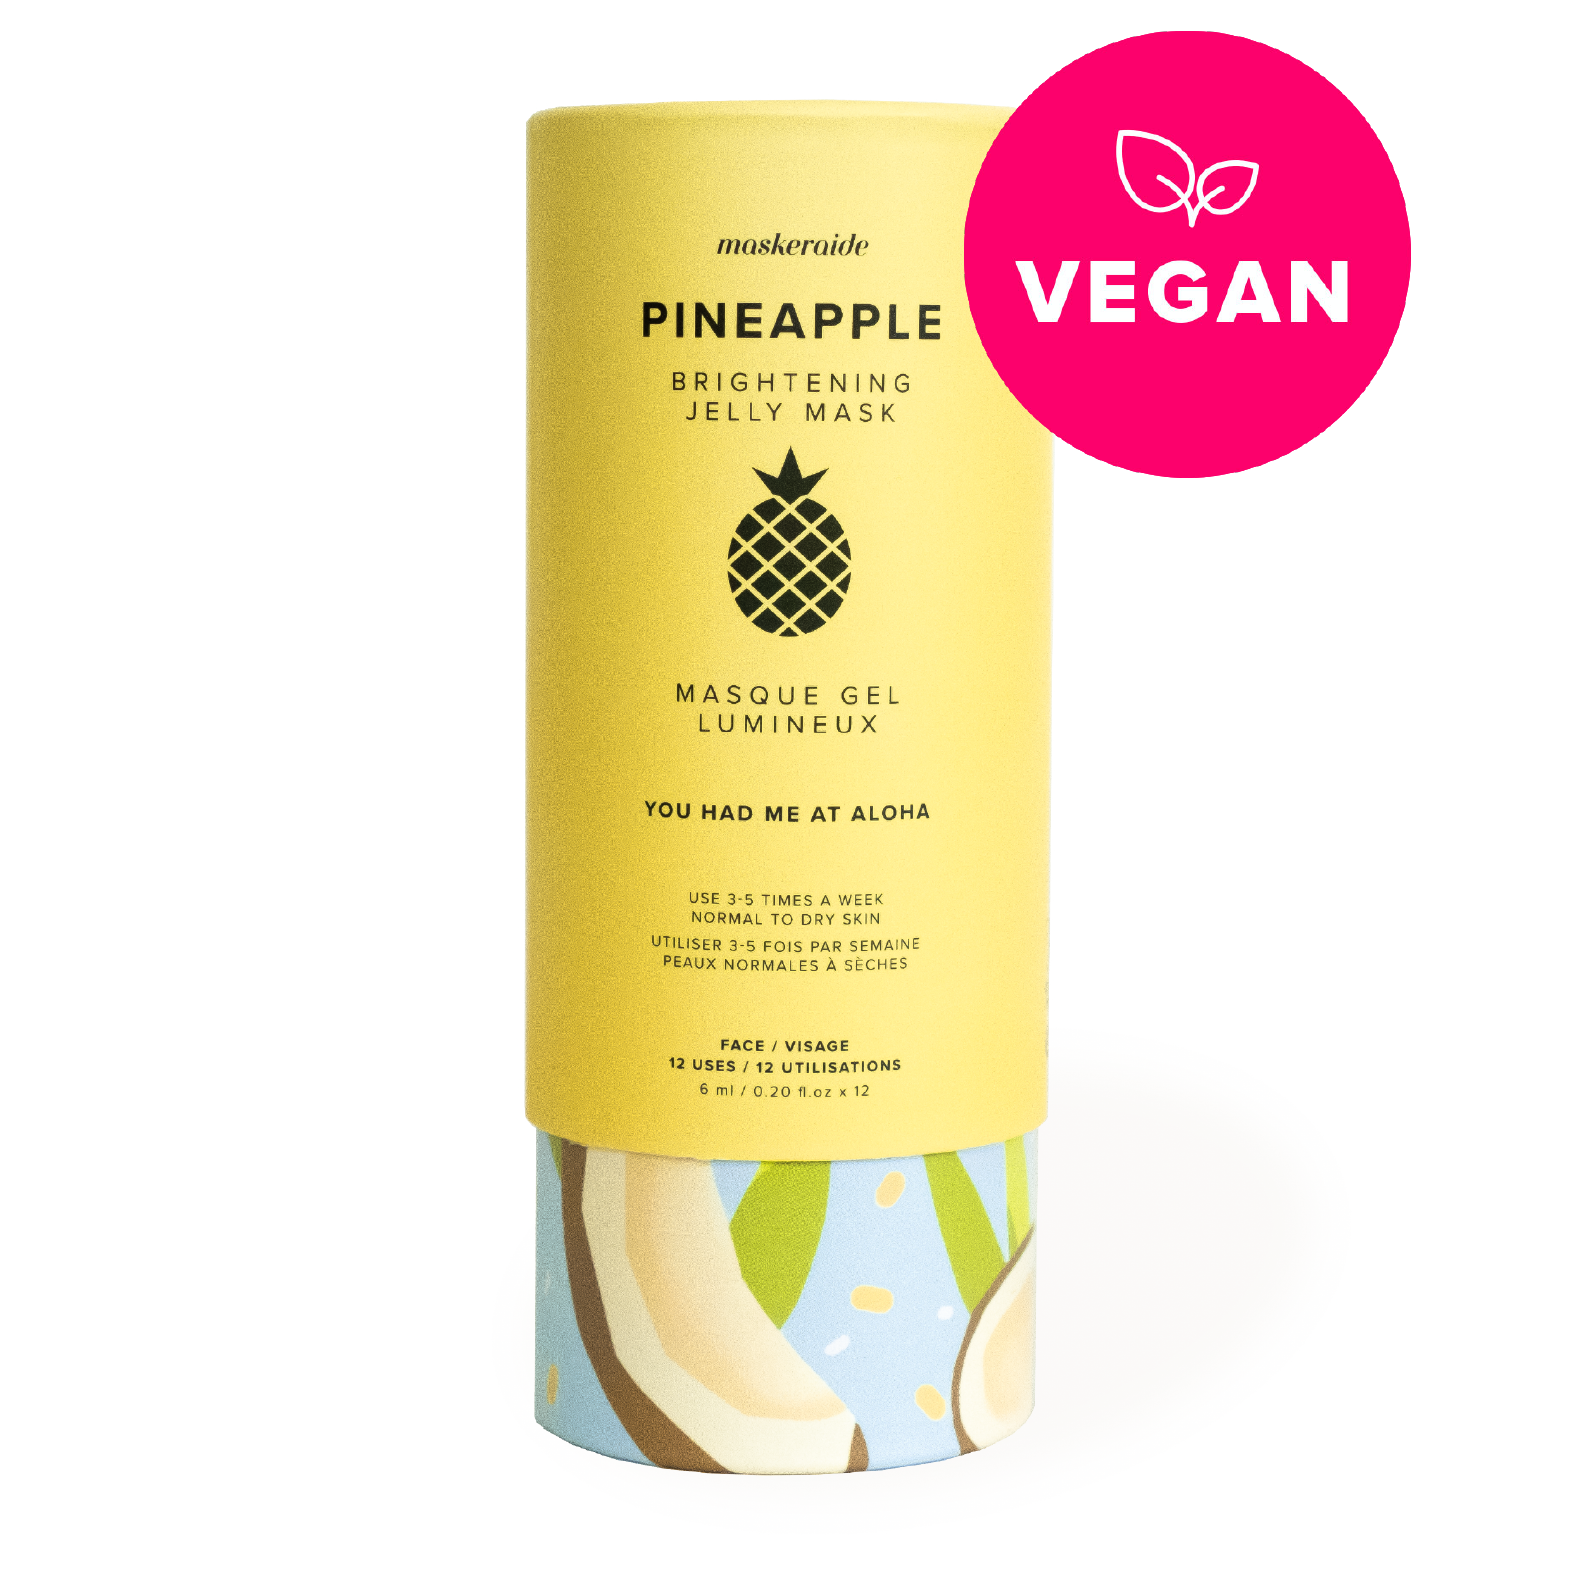 Pineapple Brightening Jelly Mask (12 Uses)